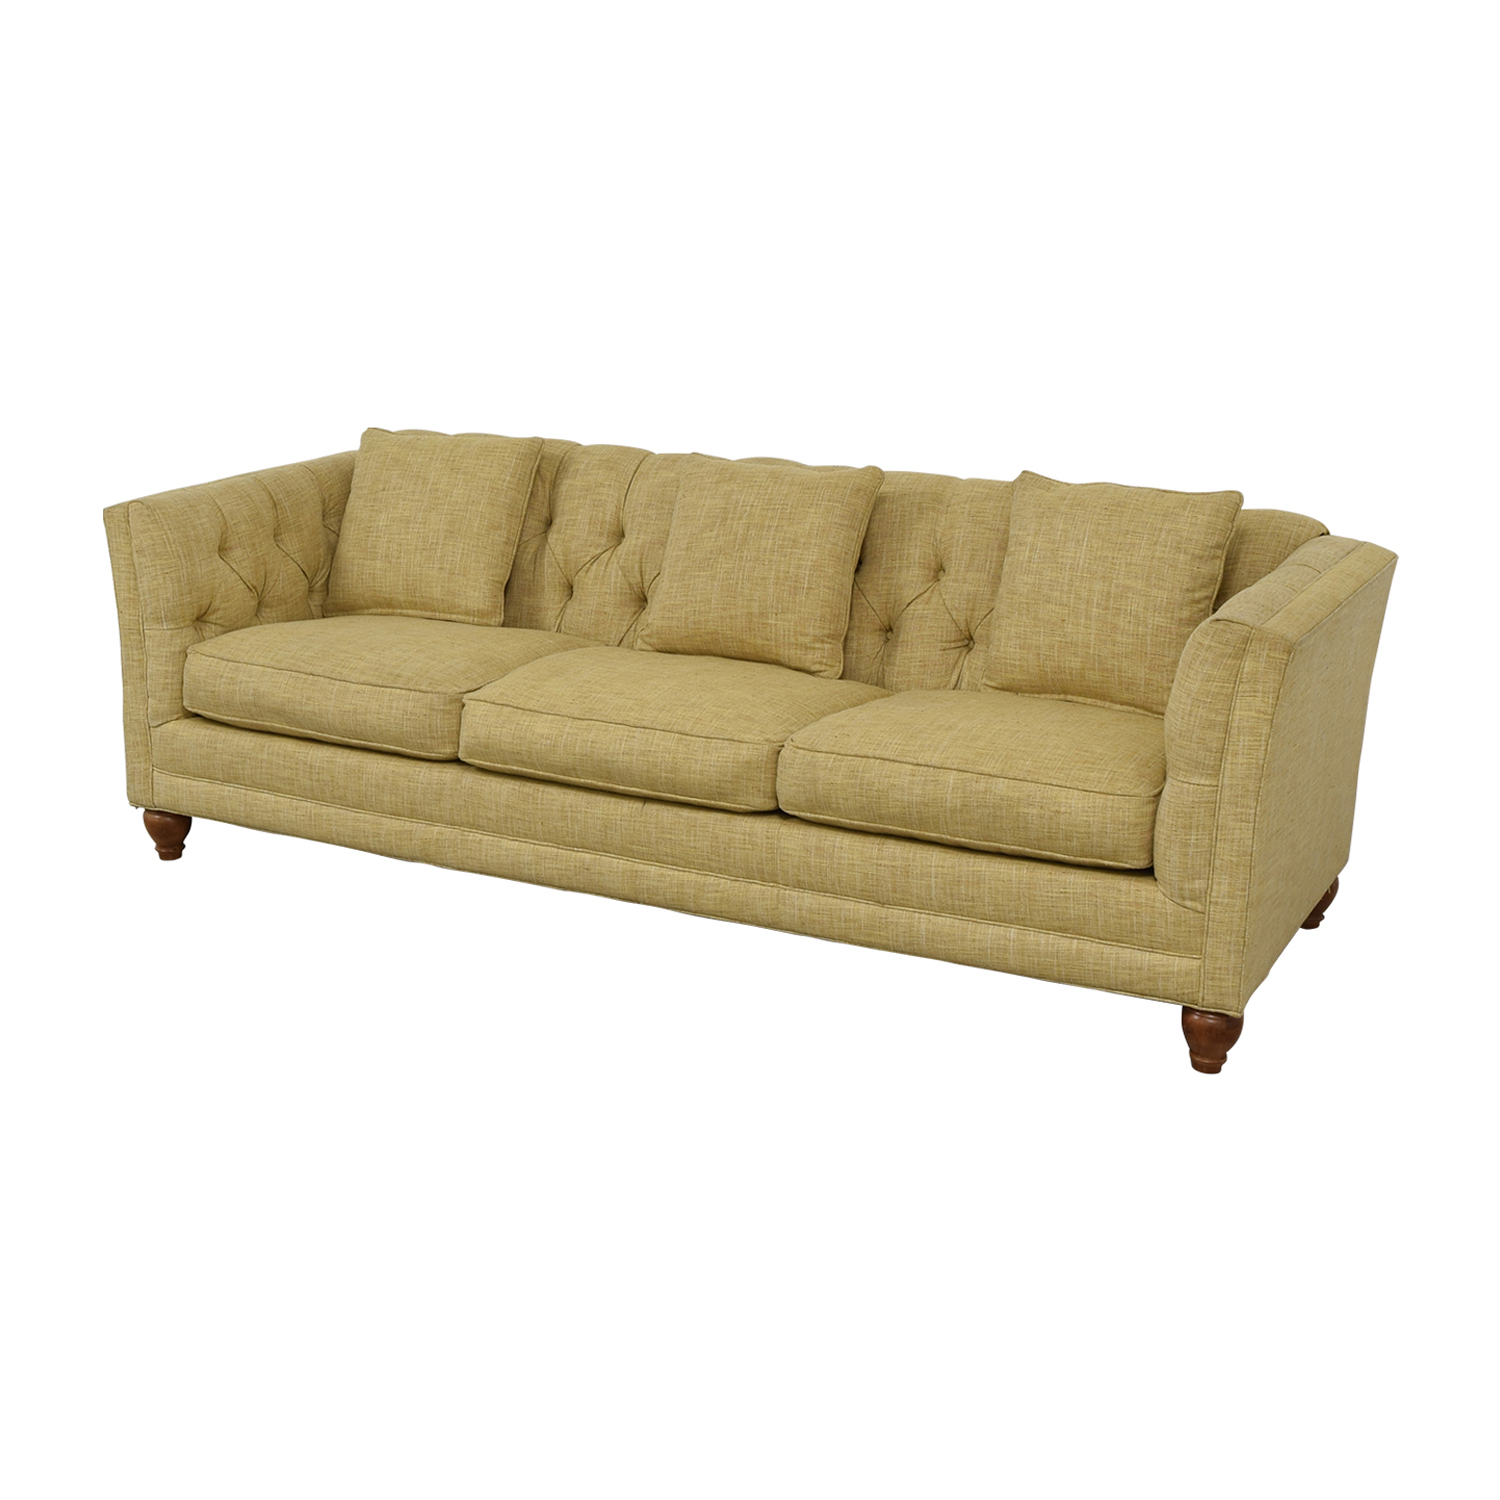 Country Willow Country Willow Chloe Tuxedo Sofa second hand